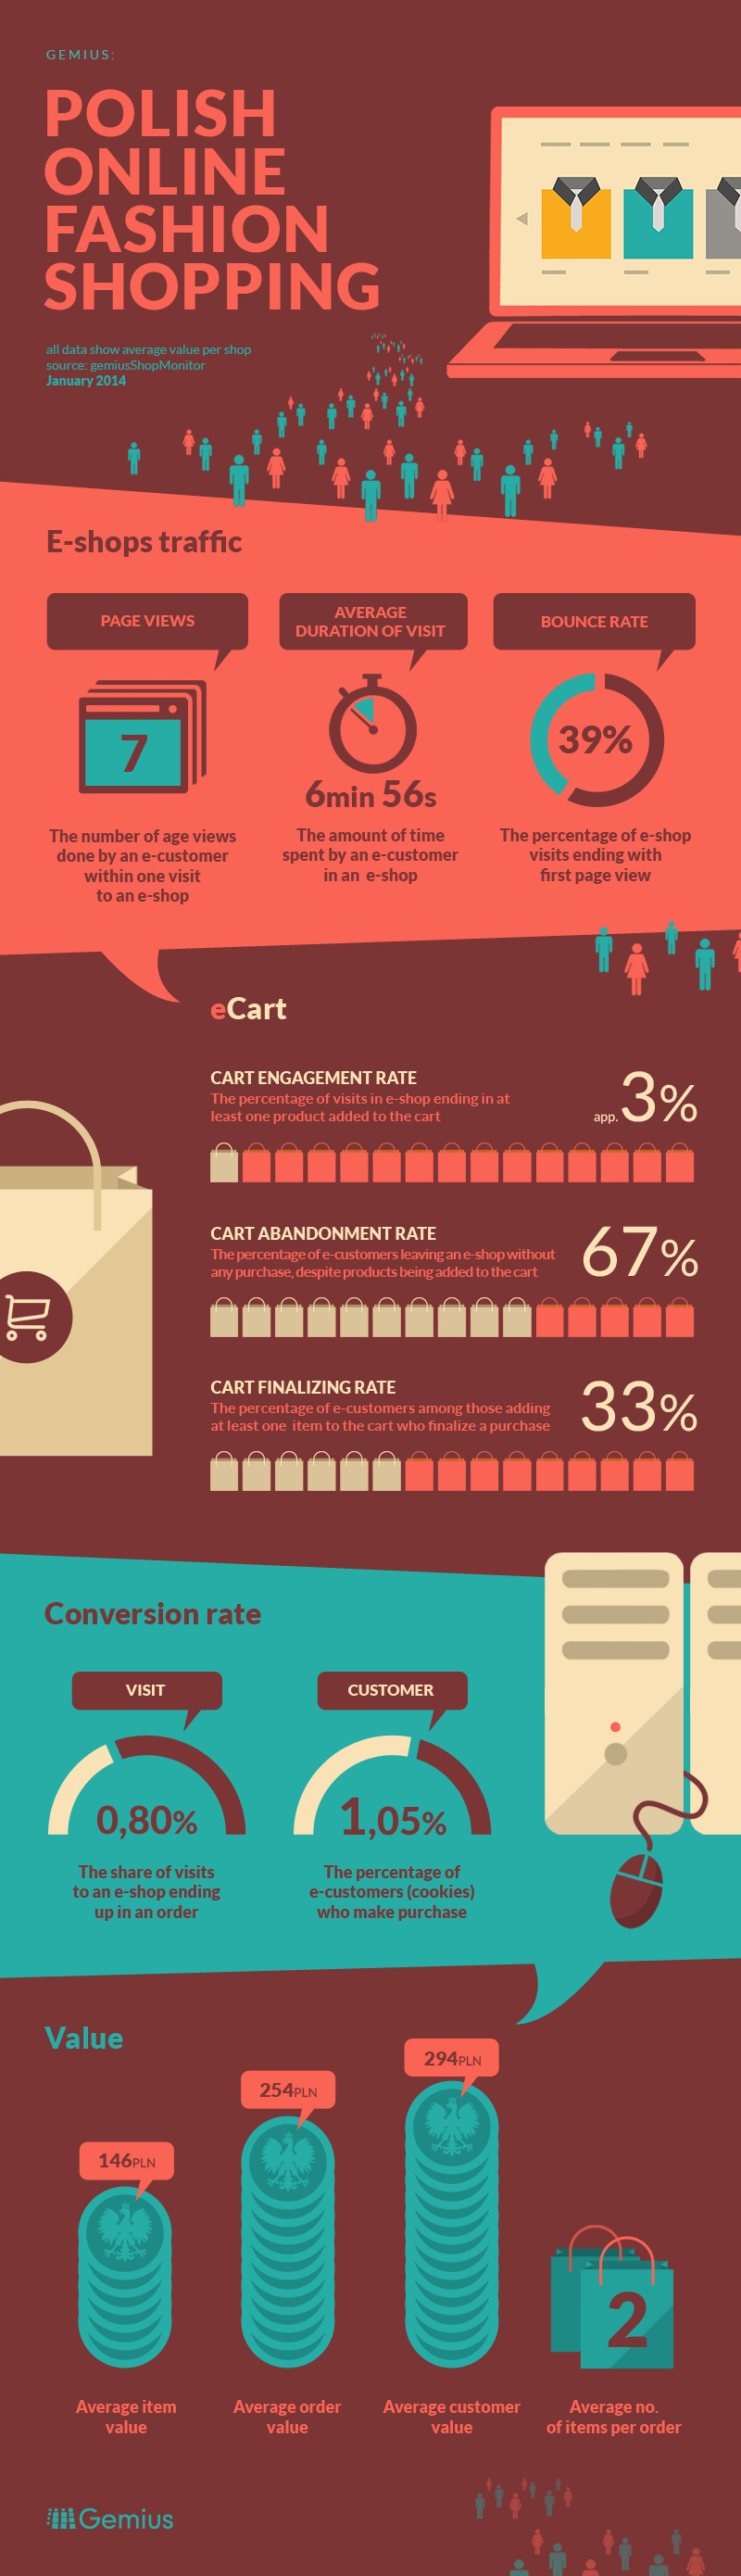 Infographic about online fashion ecommerce industry in Poland